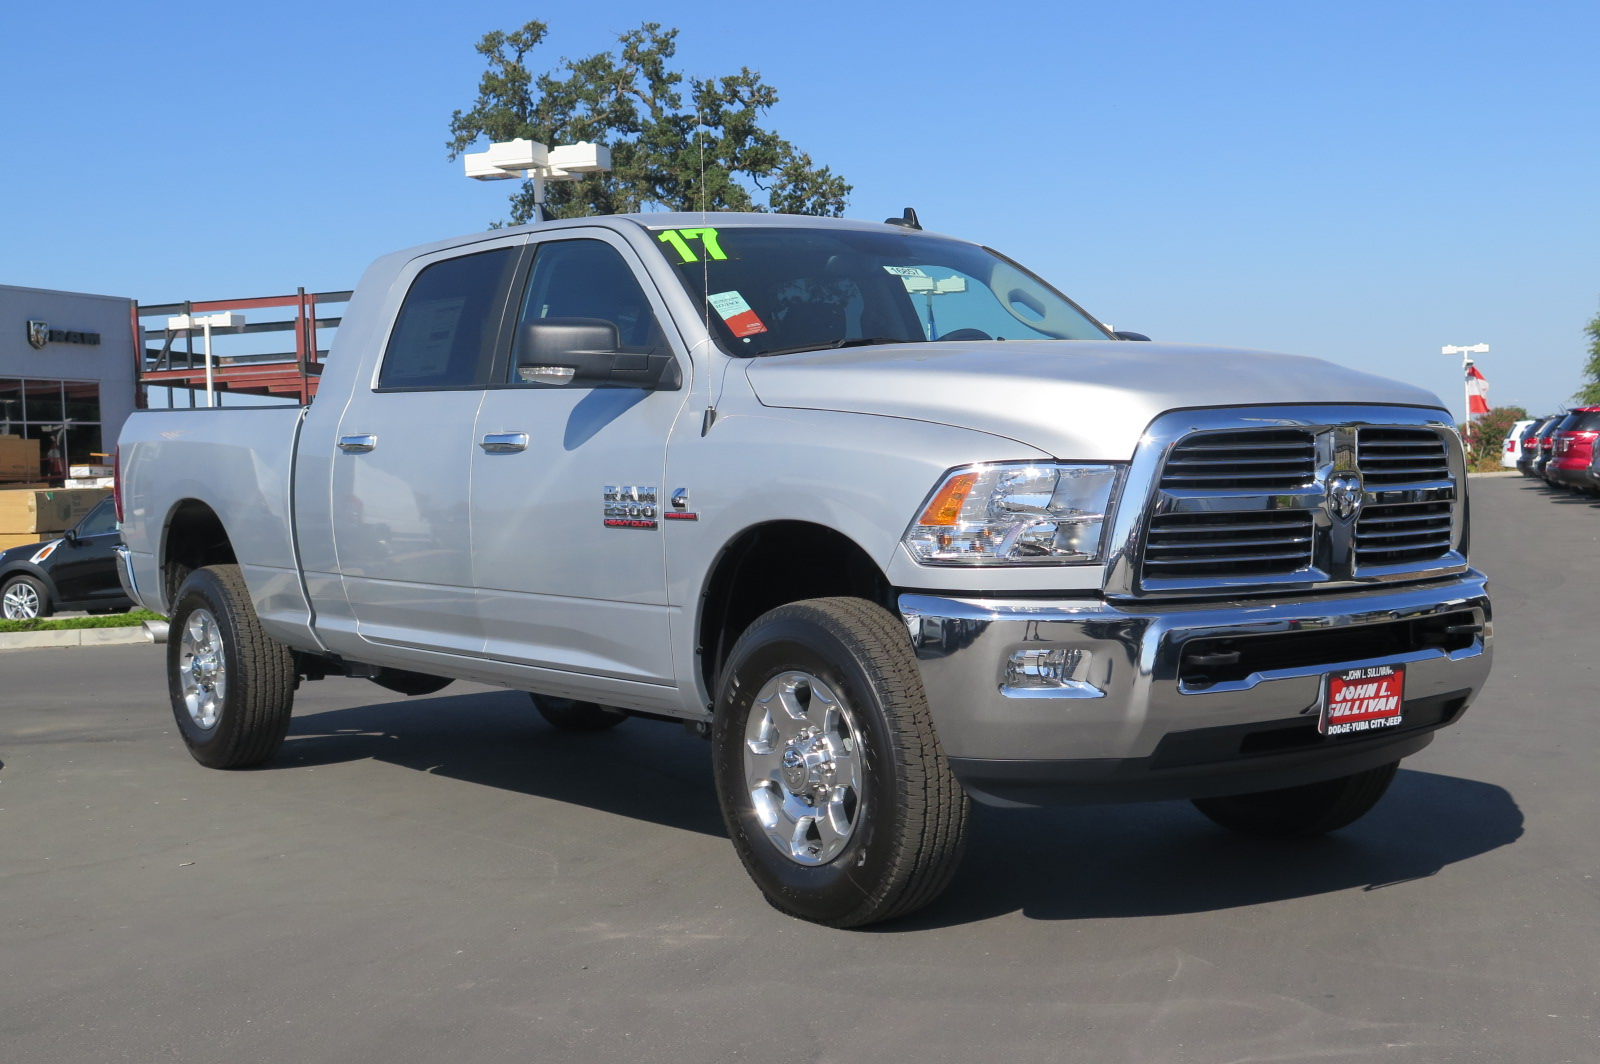 New Ram Big Horn D Mega Cab In Yuba City - Chrysler 2500